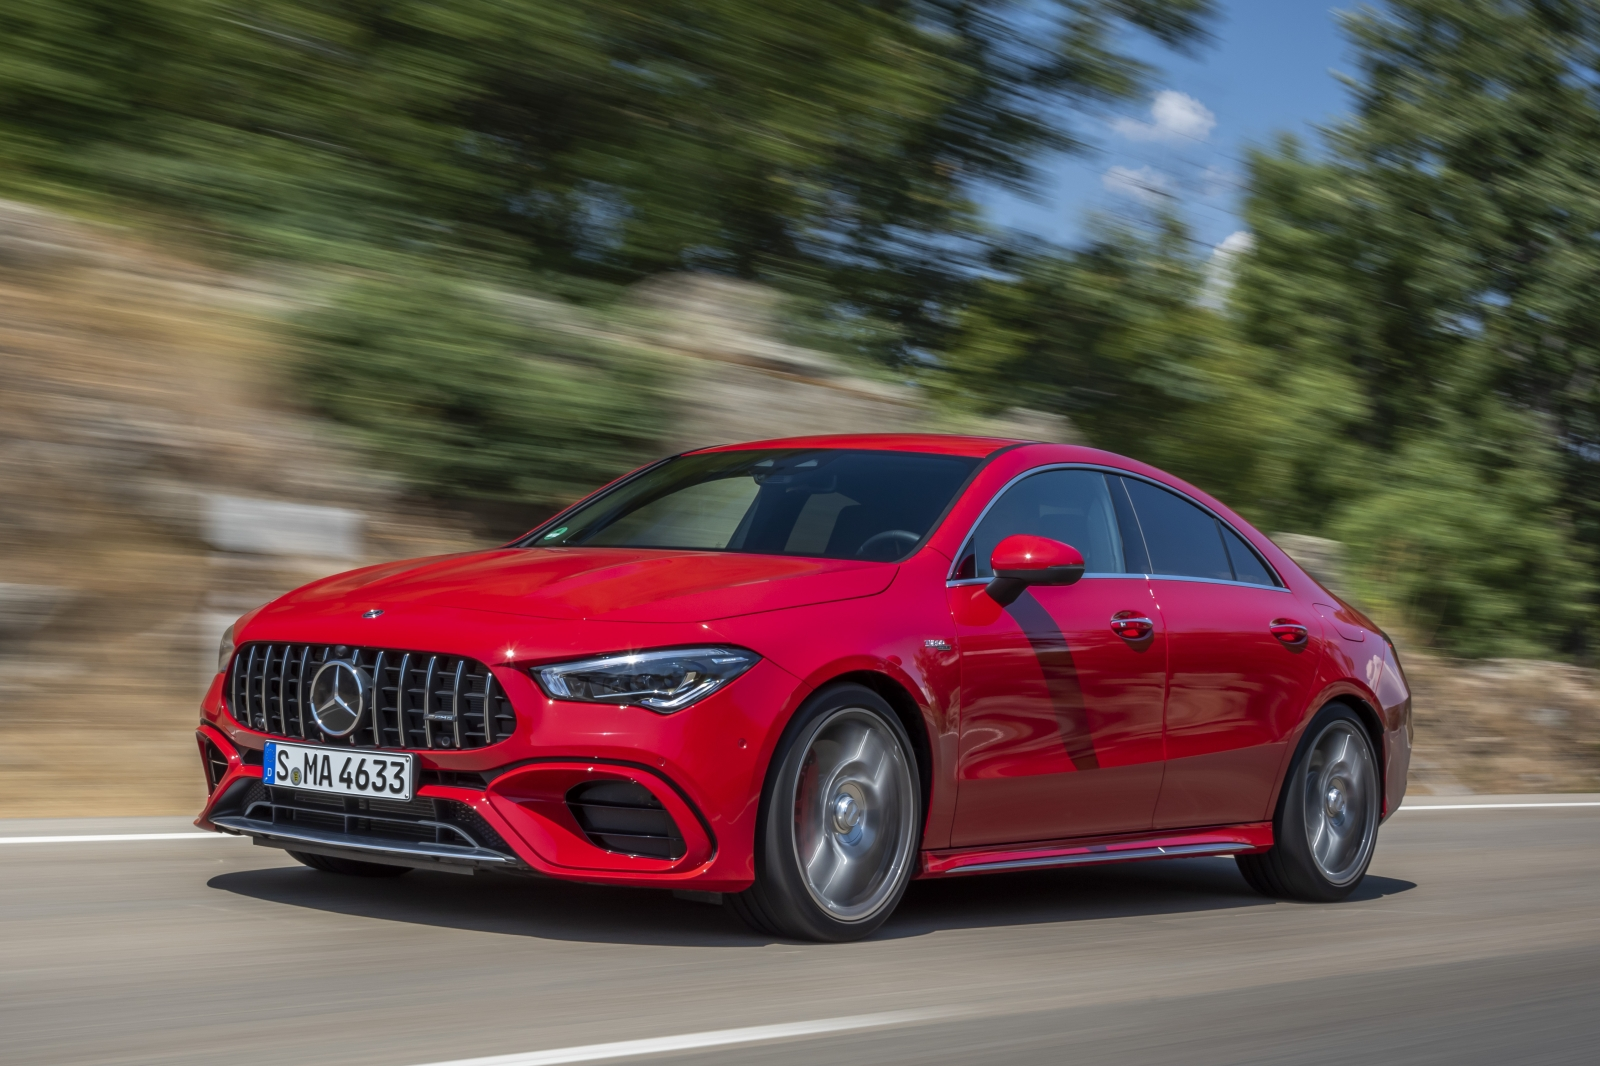 The new Mercedes-AMG performance compact cars Madrid 2019The new Mercedes-AMG performance compact cars Madrid 2019